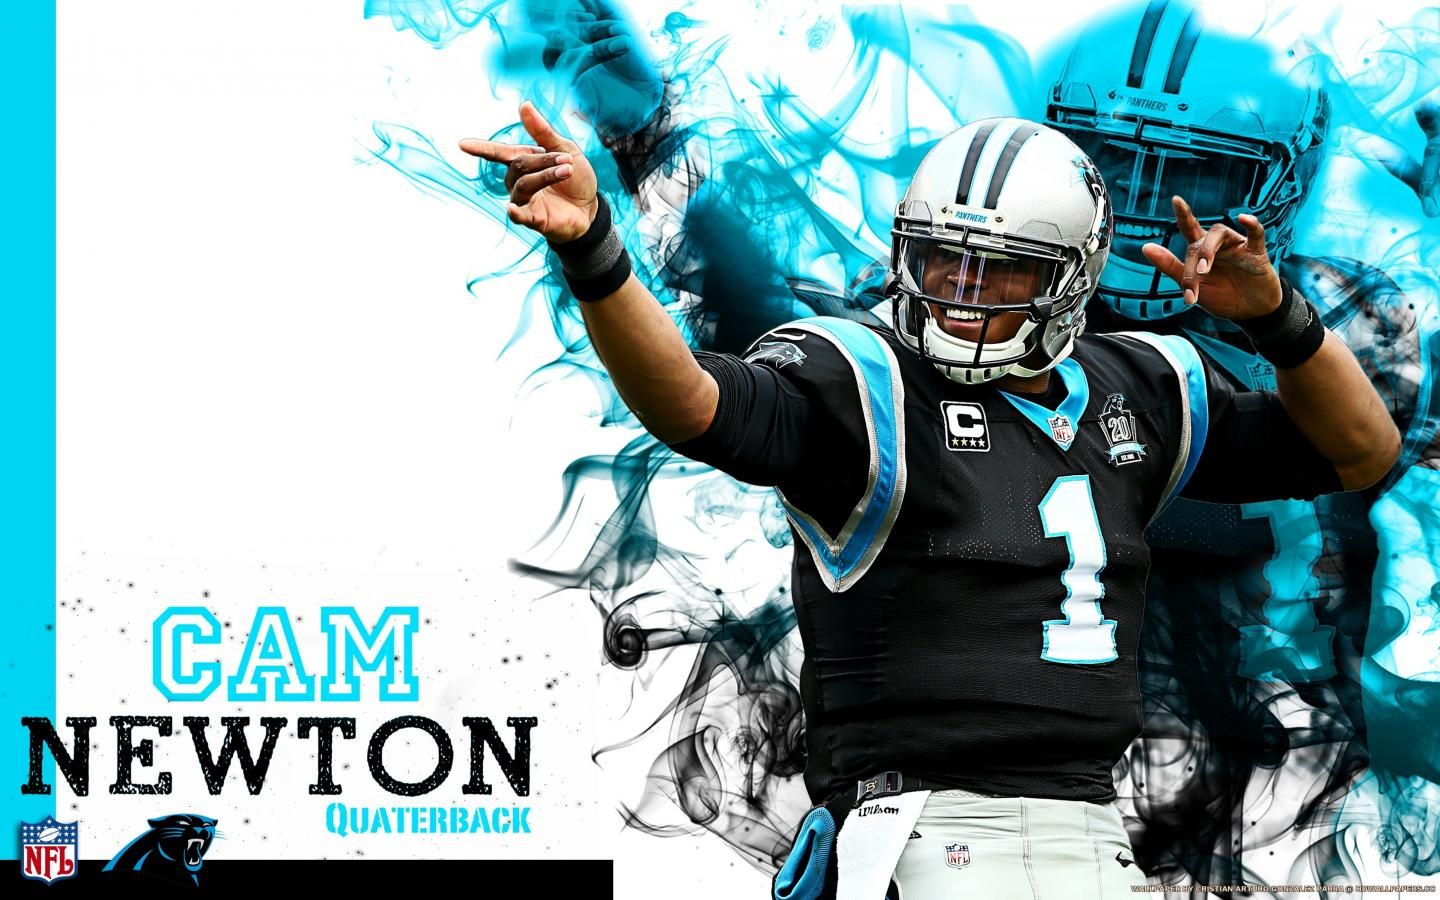 Cam Newton Wallpapers Hd Resolution Cam Newton Wallpaper Snowman Wallpaper Cam Newton